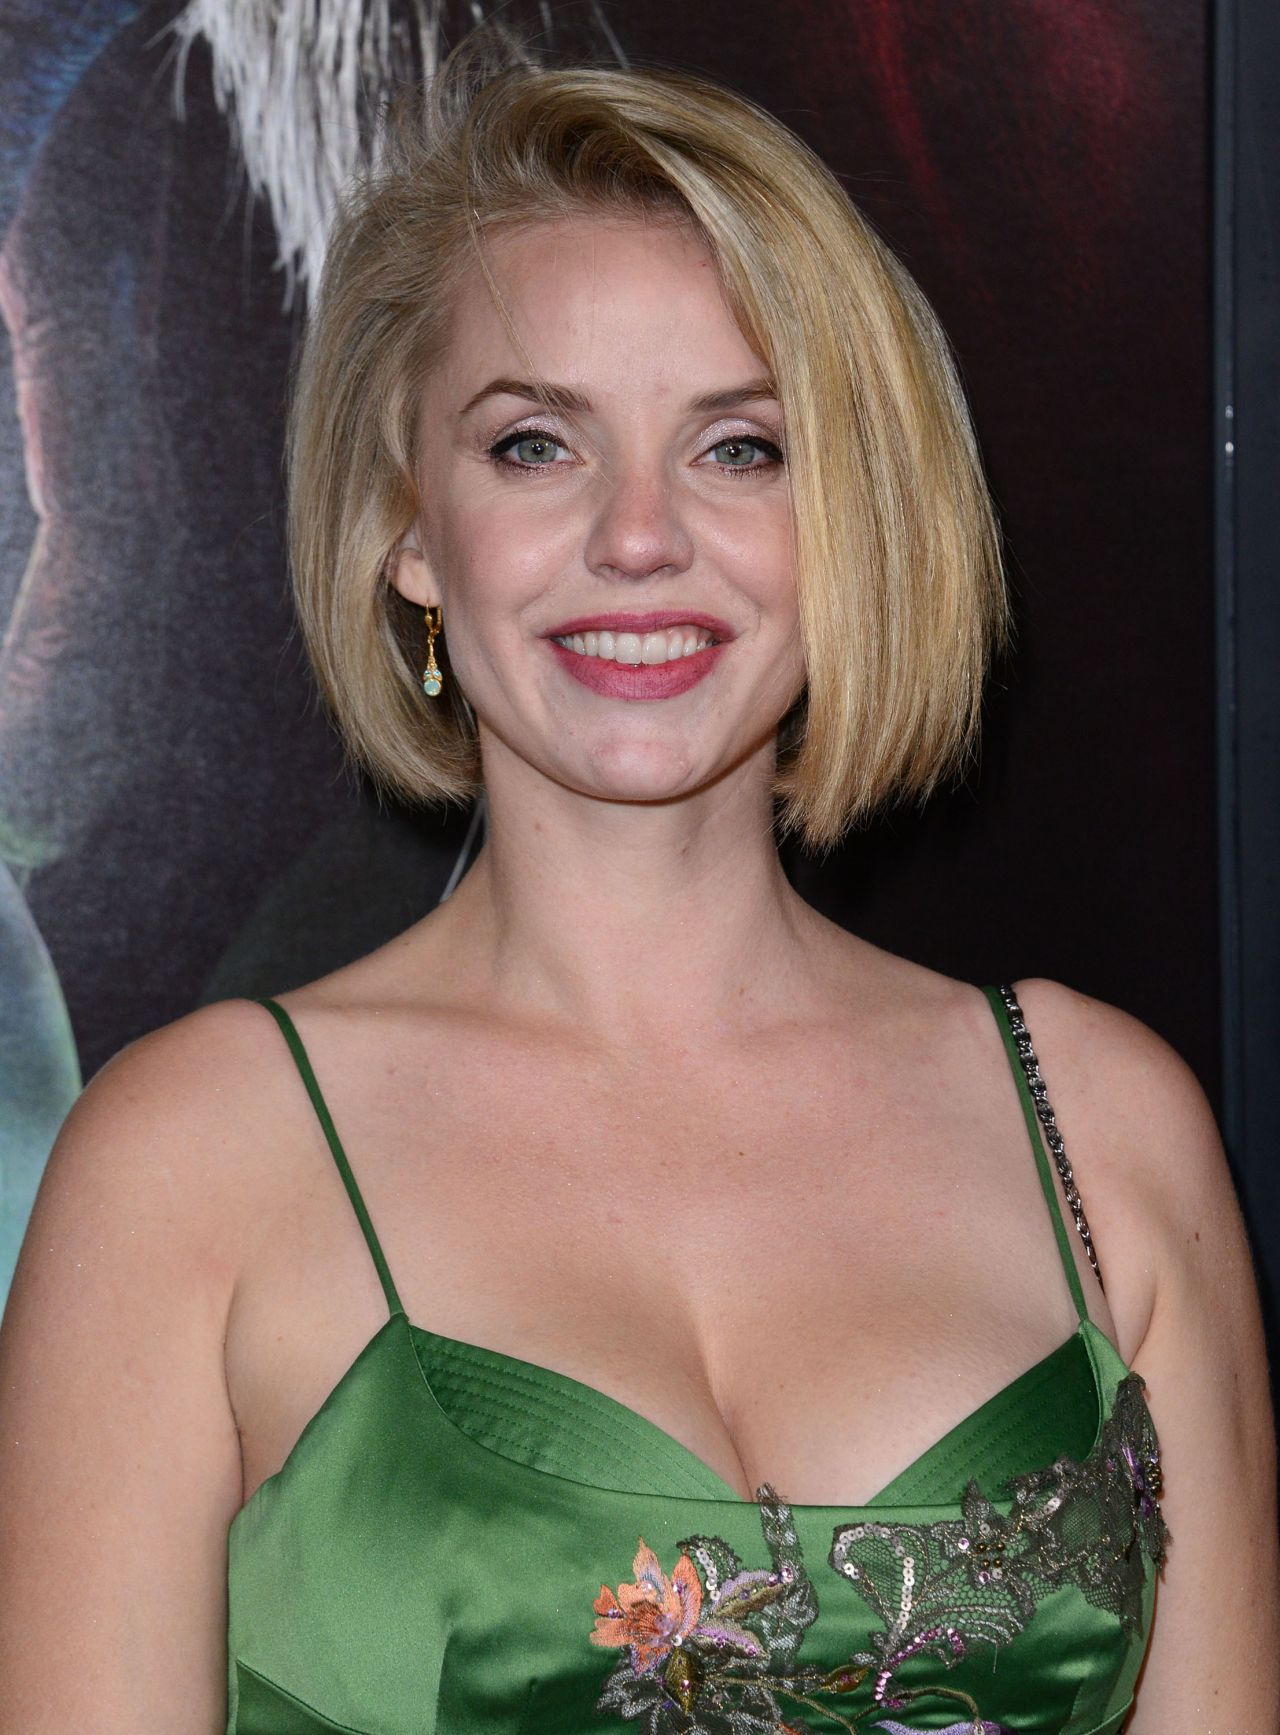 Snapchat Kelli Garner naked (76 photo), Topless, Is a cute, Boobs, in bikini 2020